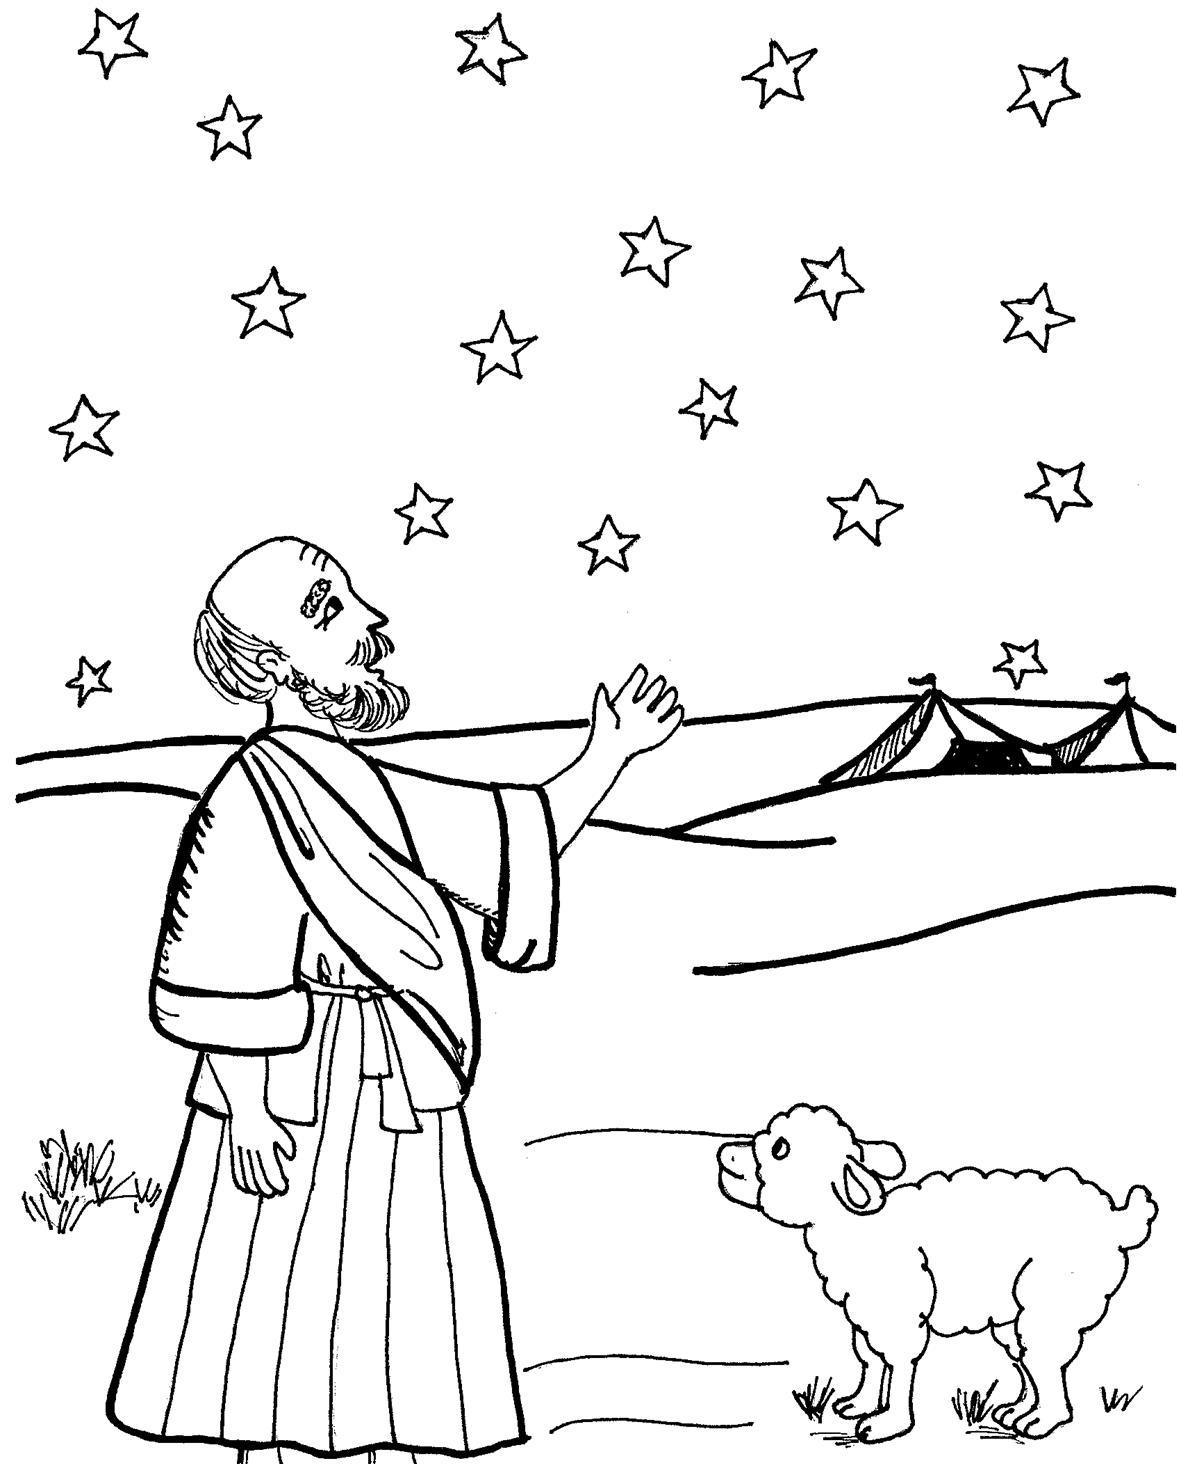 the old testament coloring pages - photo#27